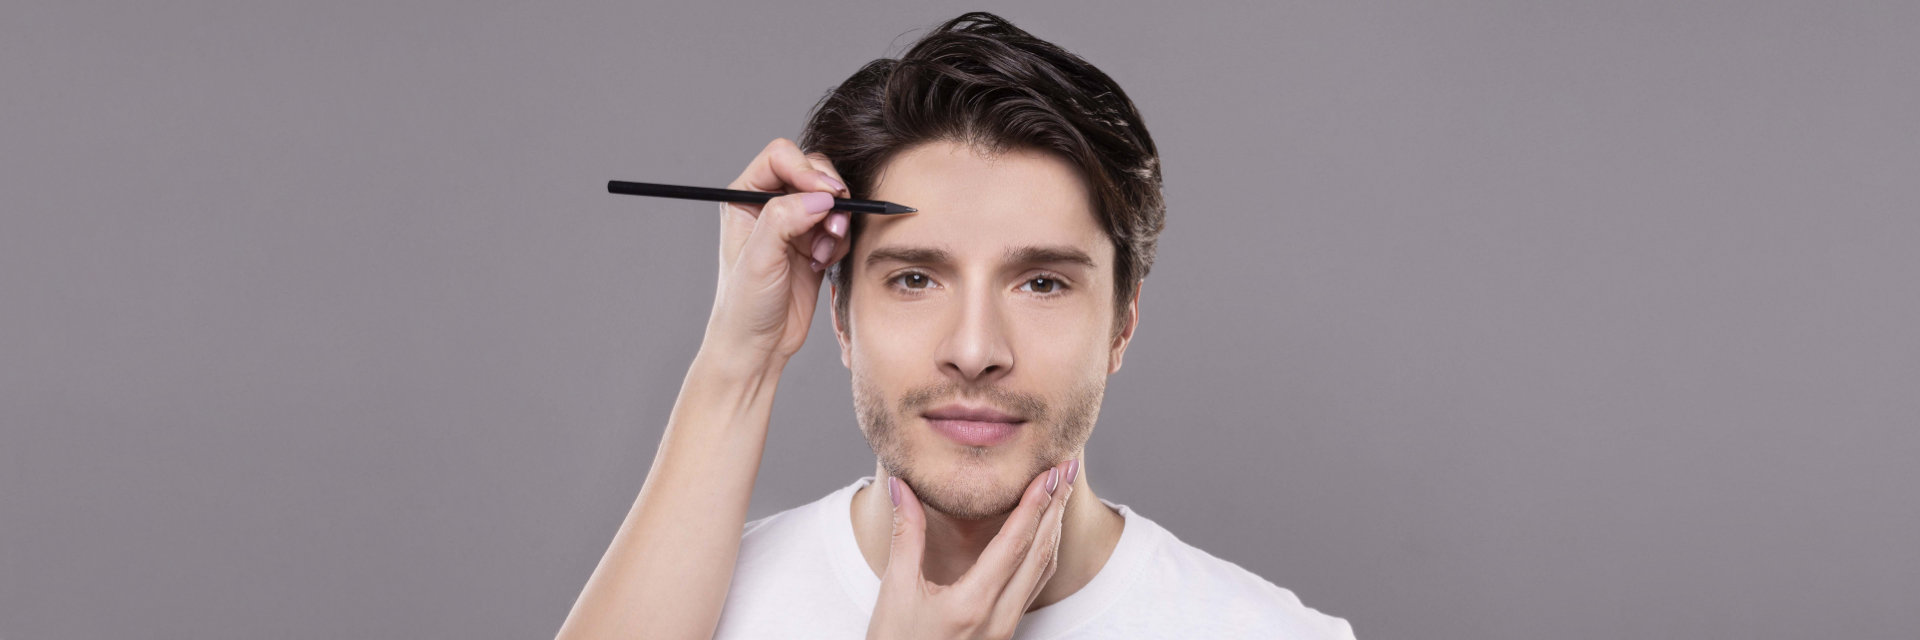 plastic surgeon drawing lines on a man's face before cosmetic facial surgery